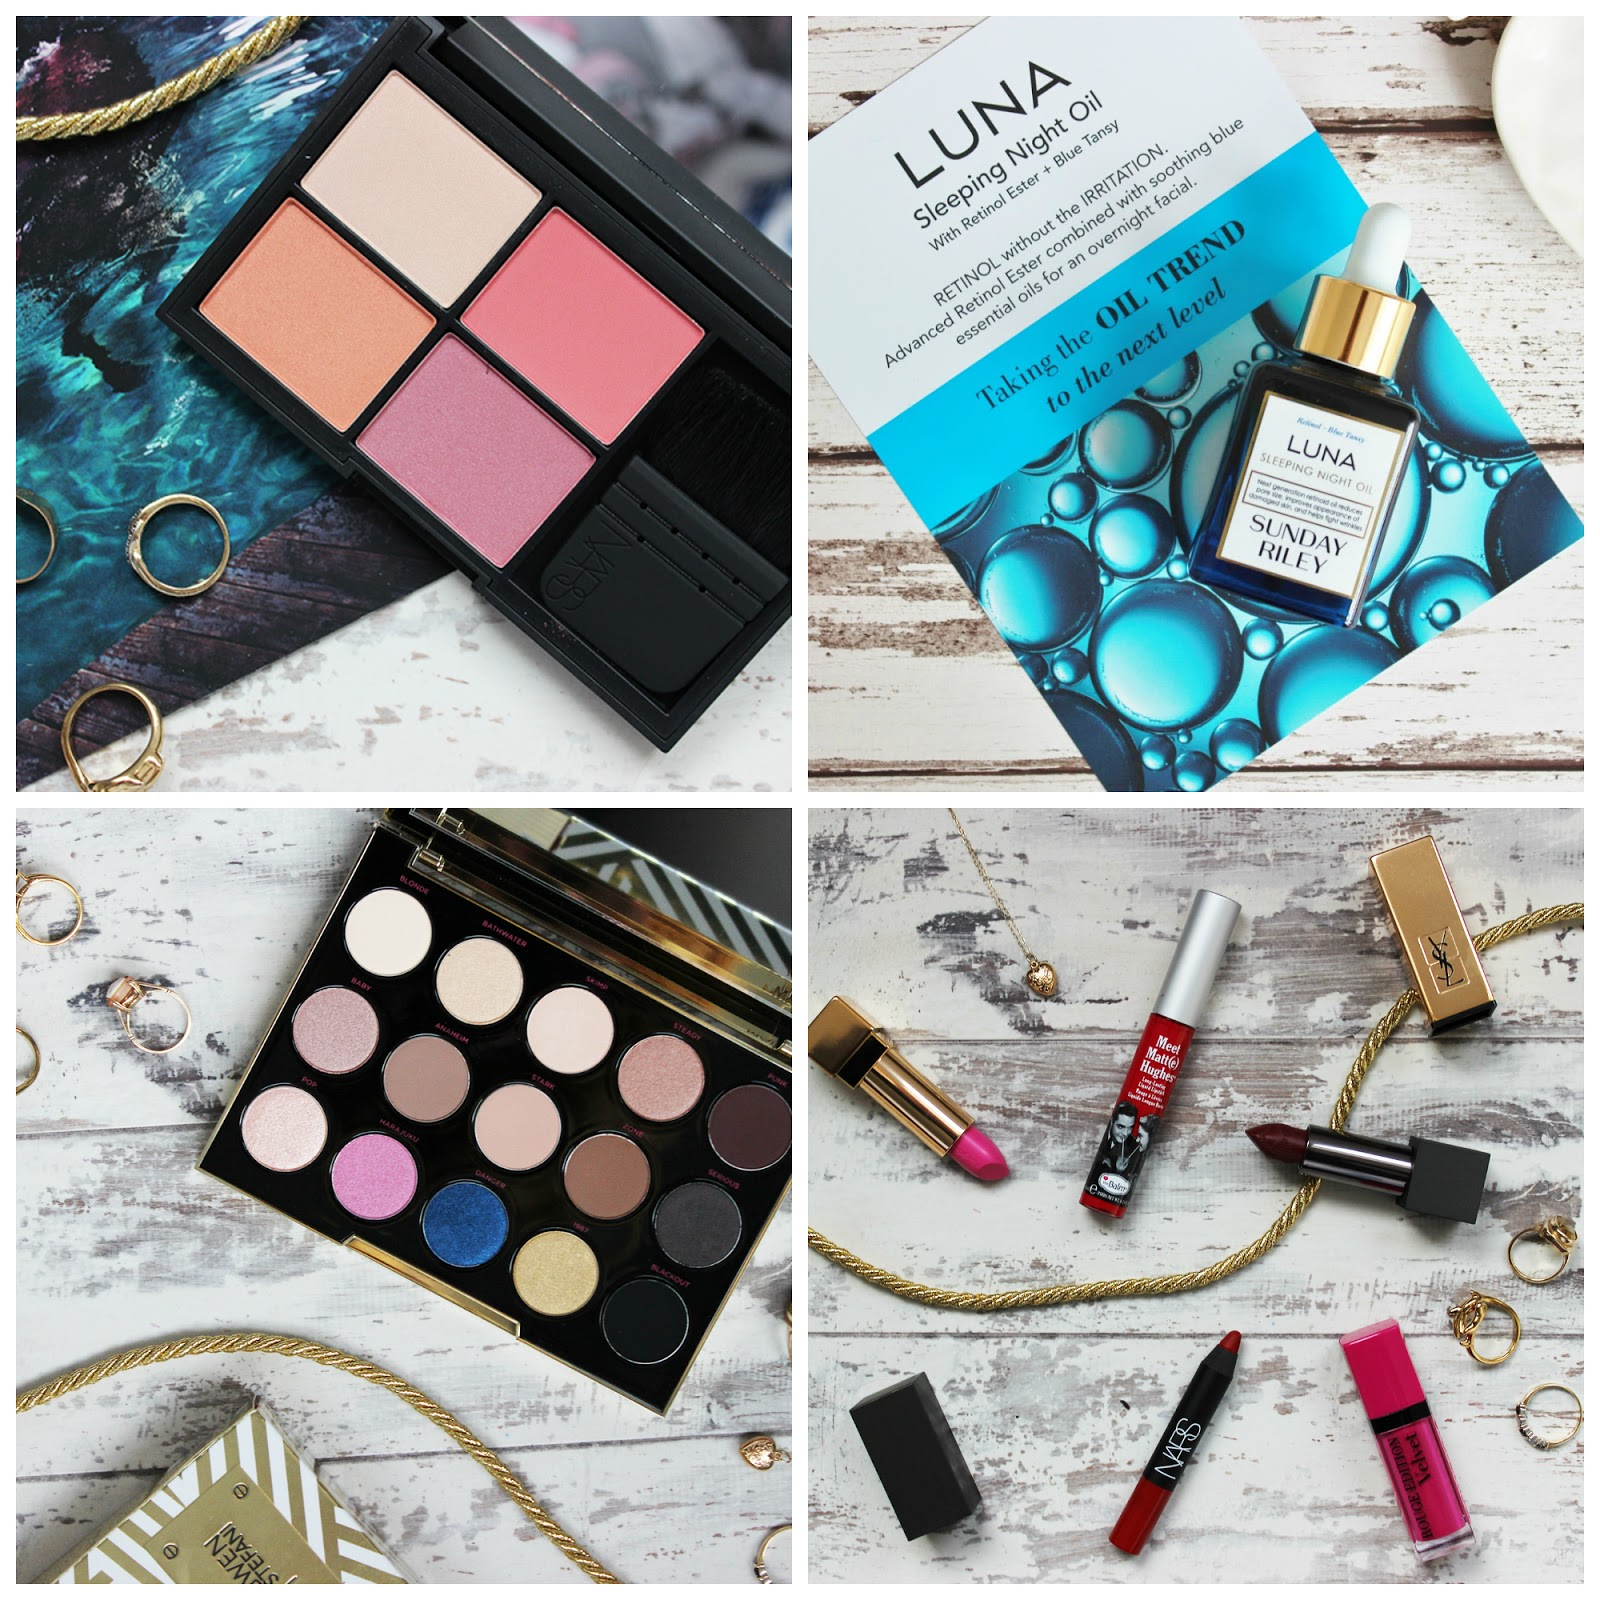 Top high end beauty products of 2015